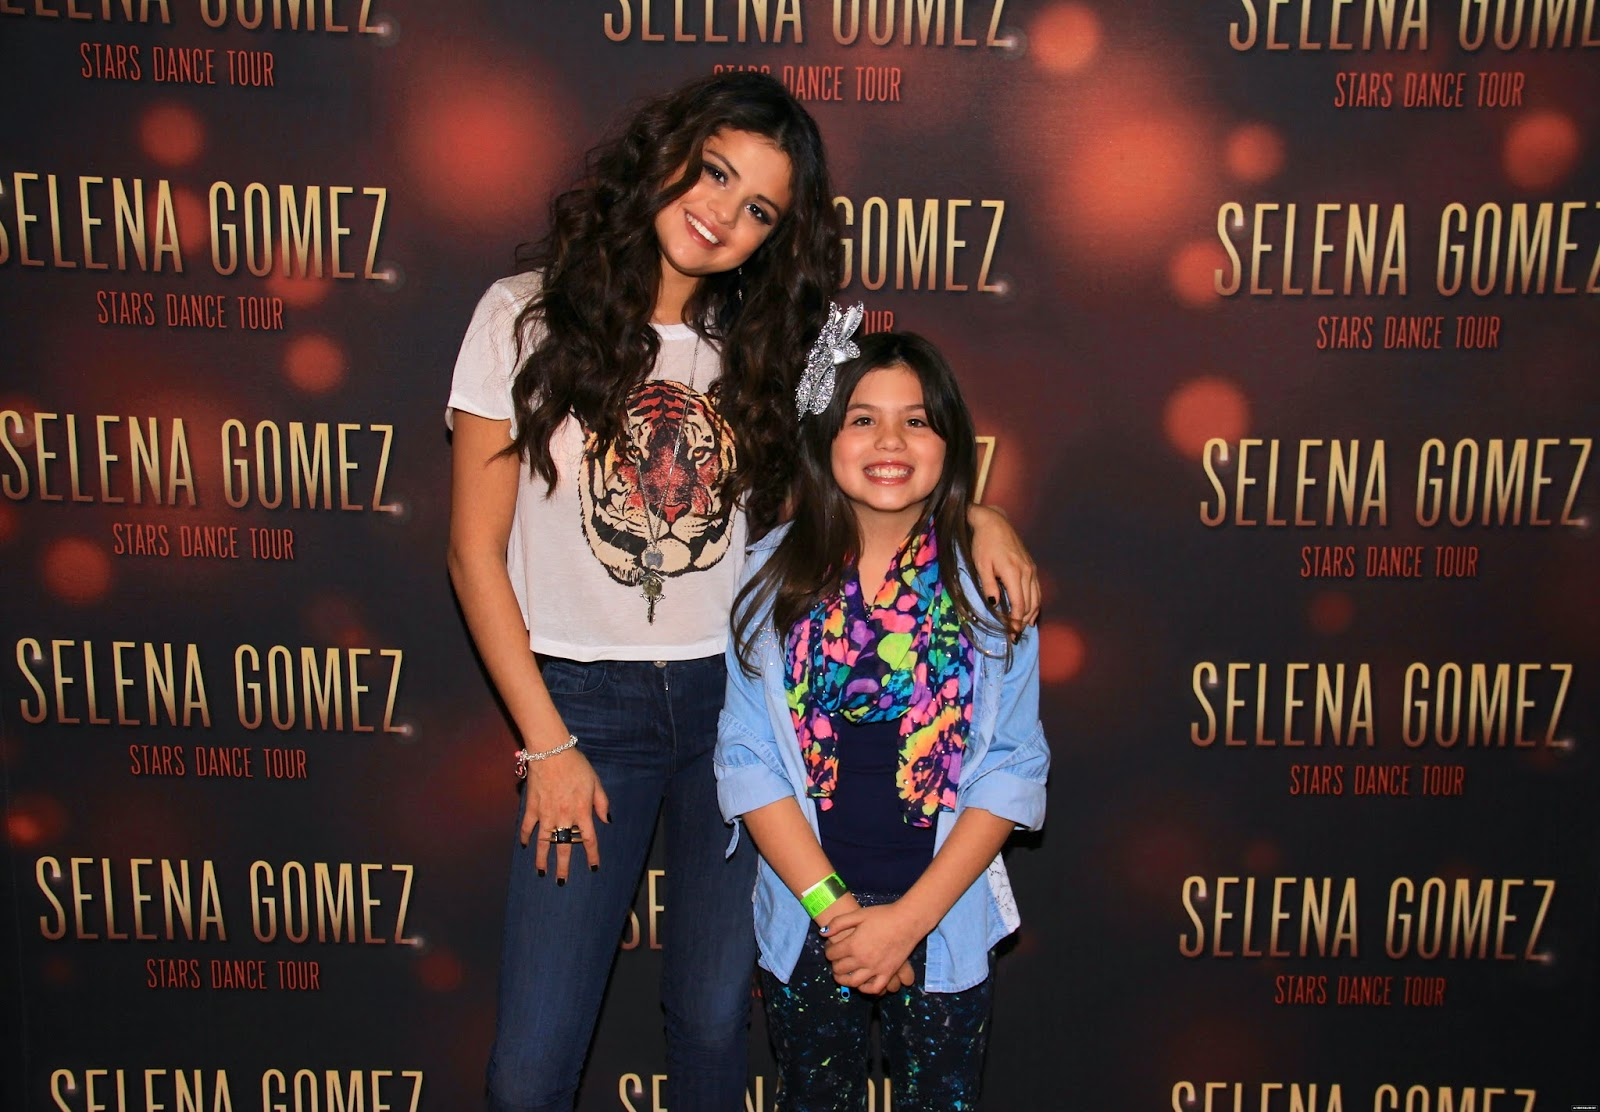 Selena gomez stars dance tour meet and greet selena gomez meet and greet 2013 stars dance www m4hsunfo